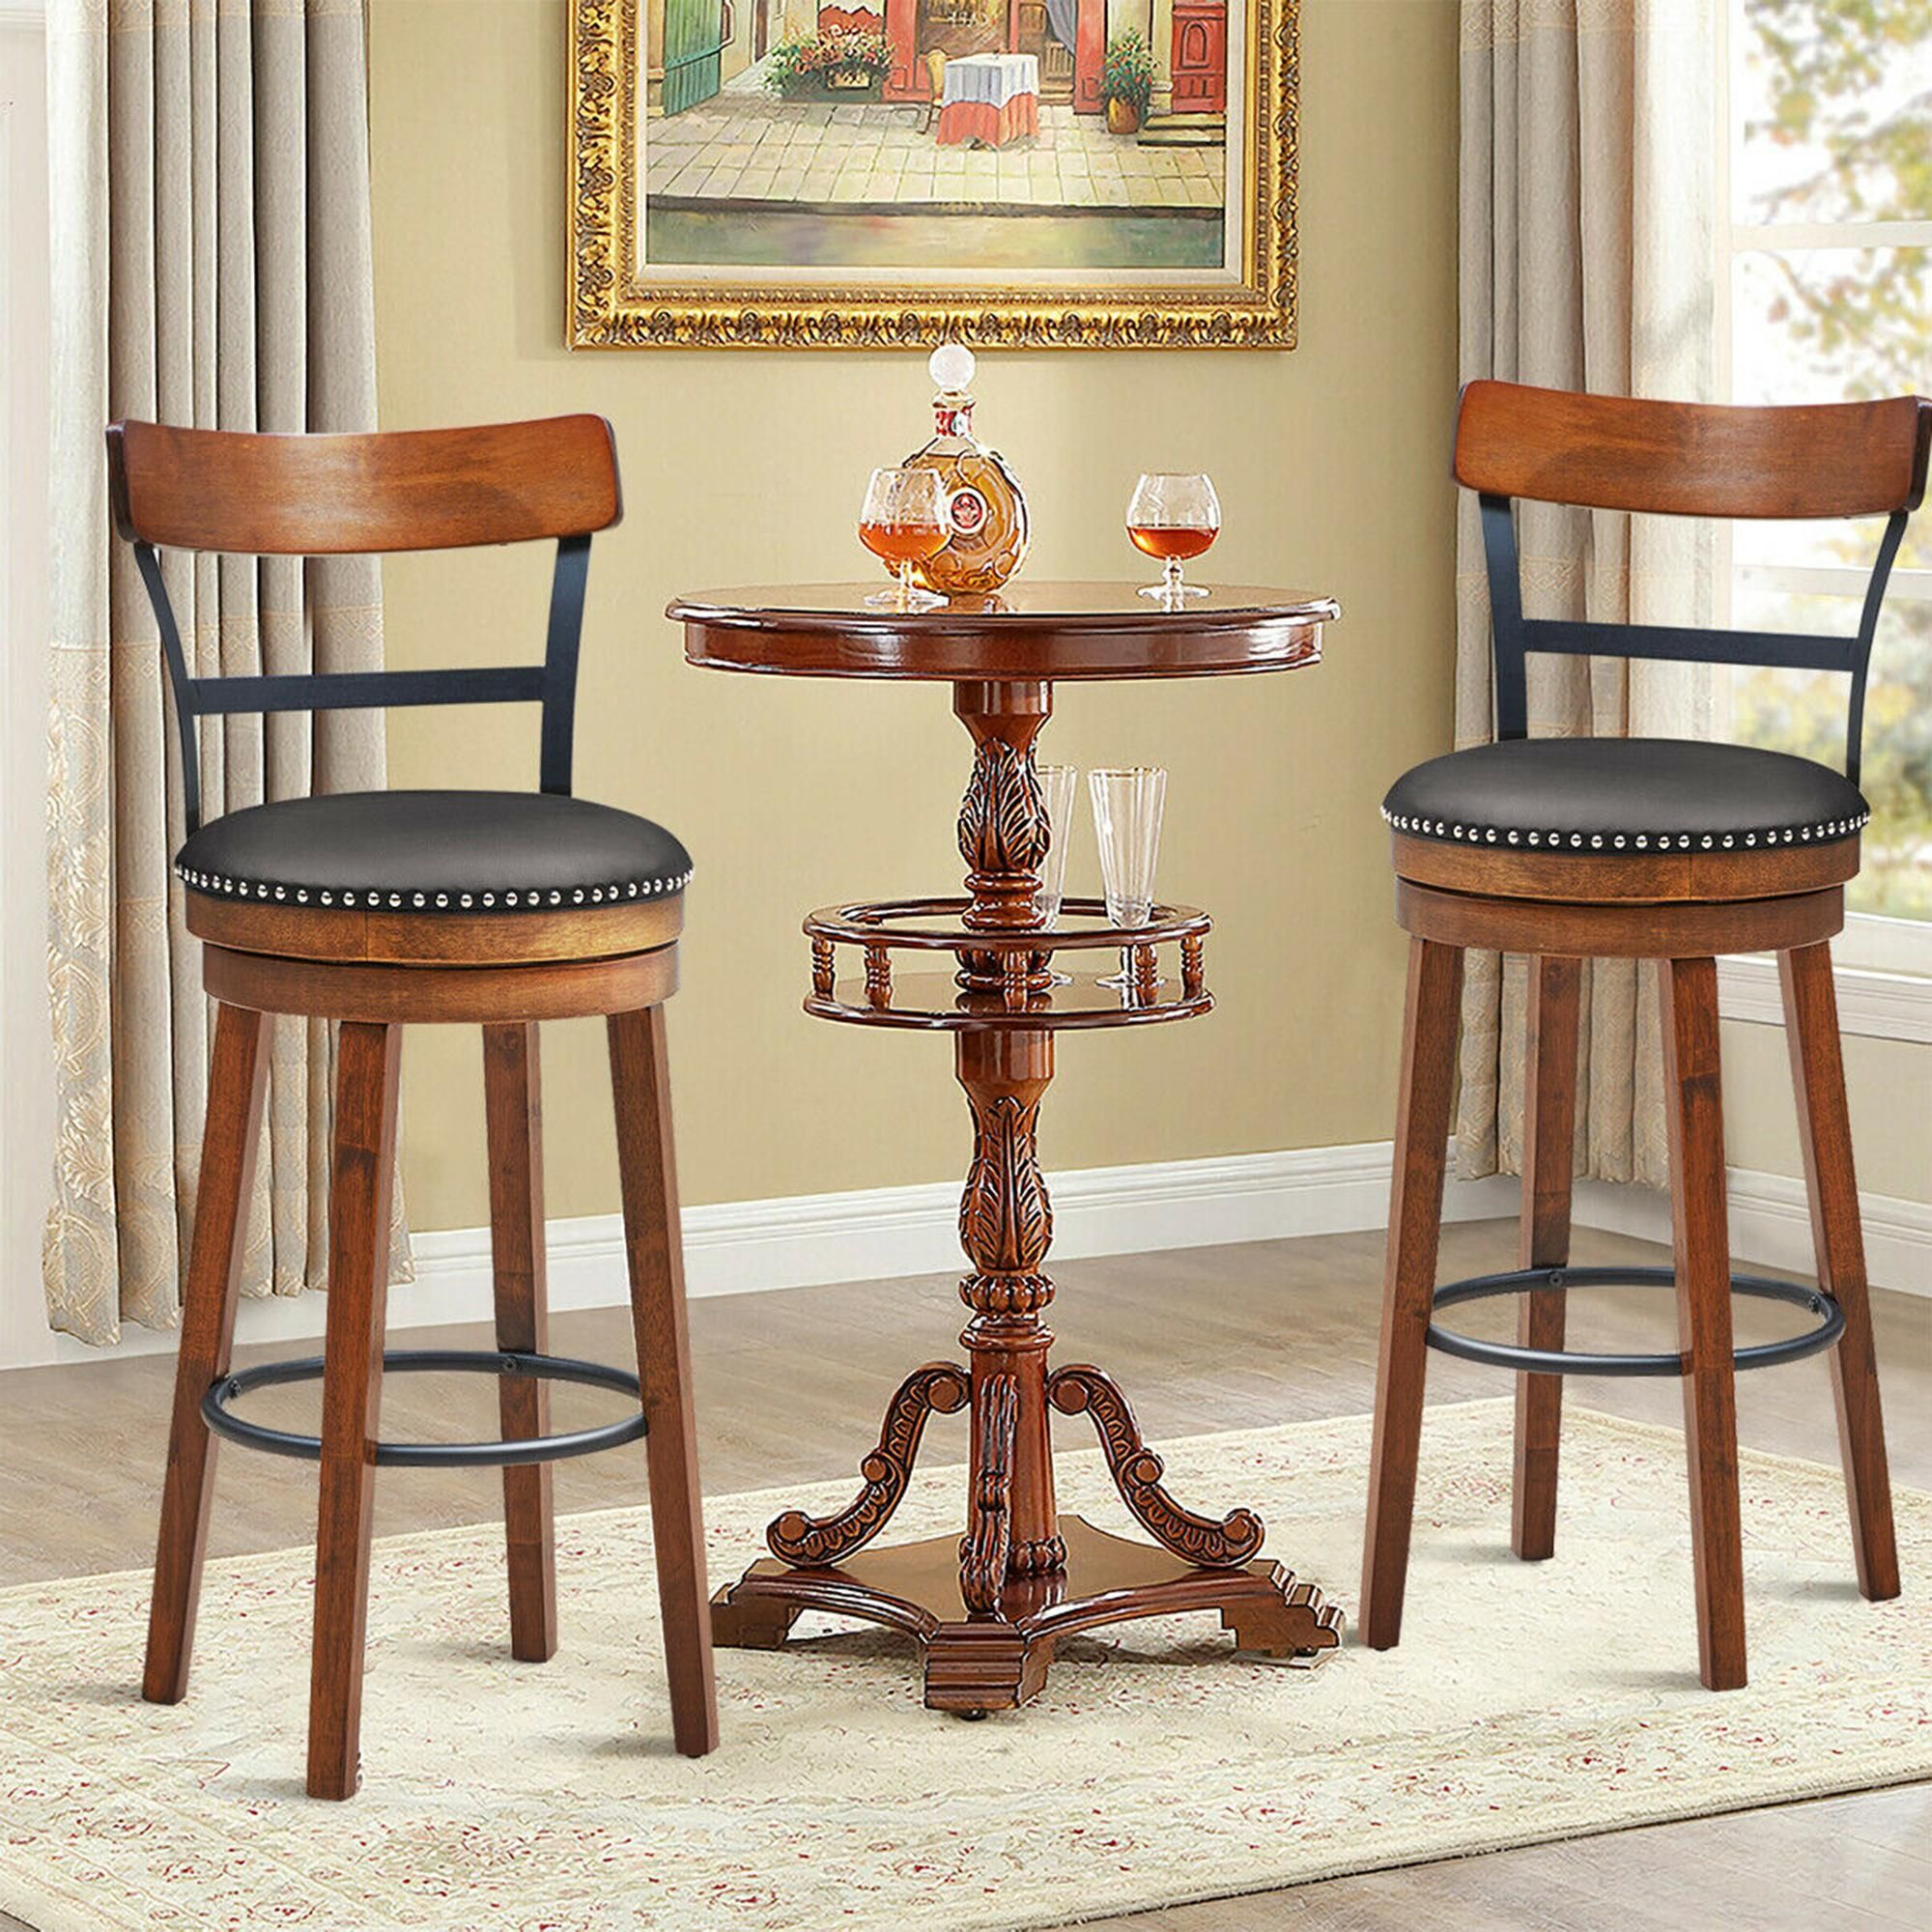 Costway Set of 2 BarStool 30.5'' Swivel Pub Height Dining Chair with Rubber Wood Legs